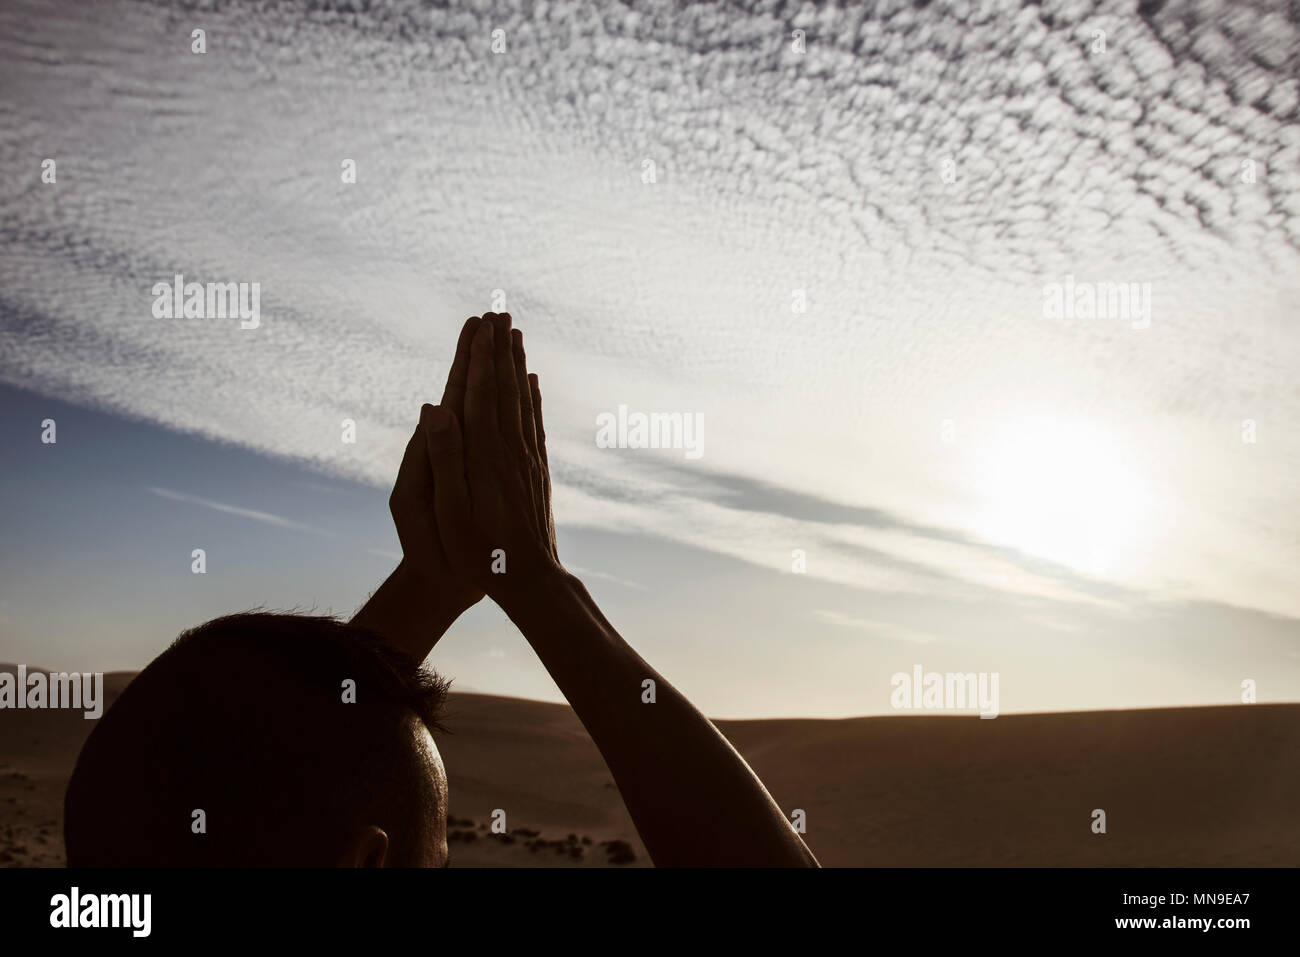 closeup of a young caucasian man practicing yoga outdoors, against a cloudy sky, with the sun in the background - Stock Image